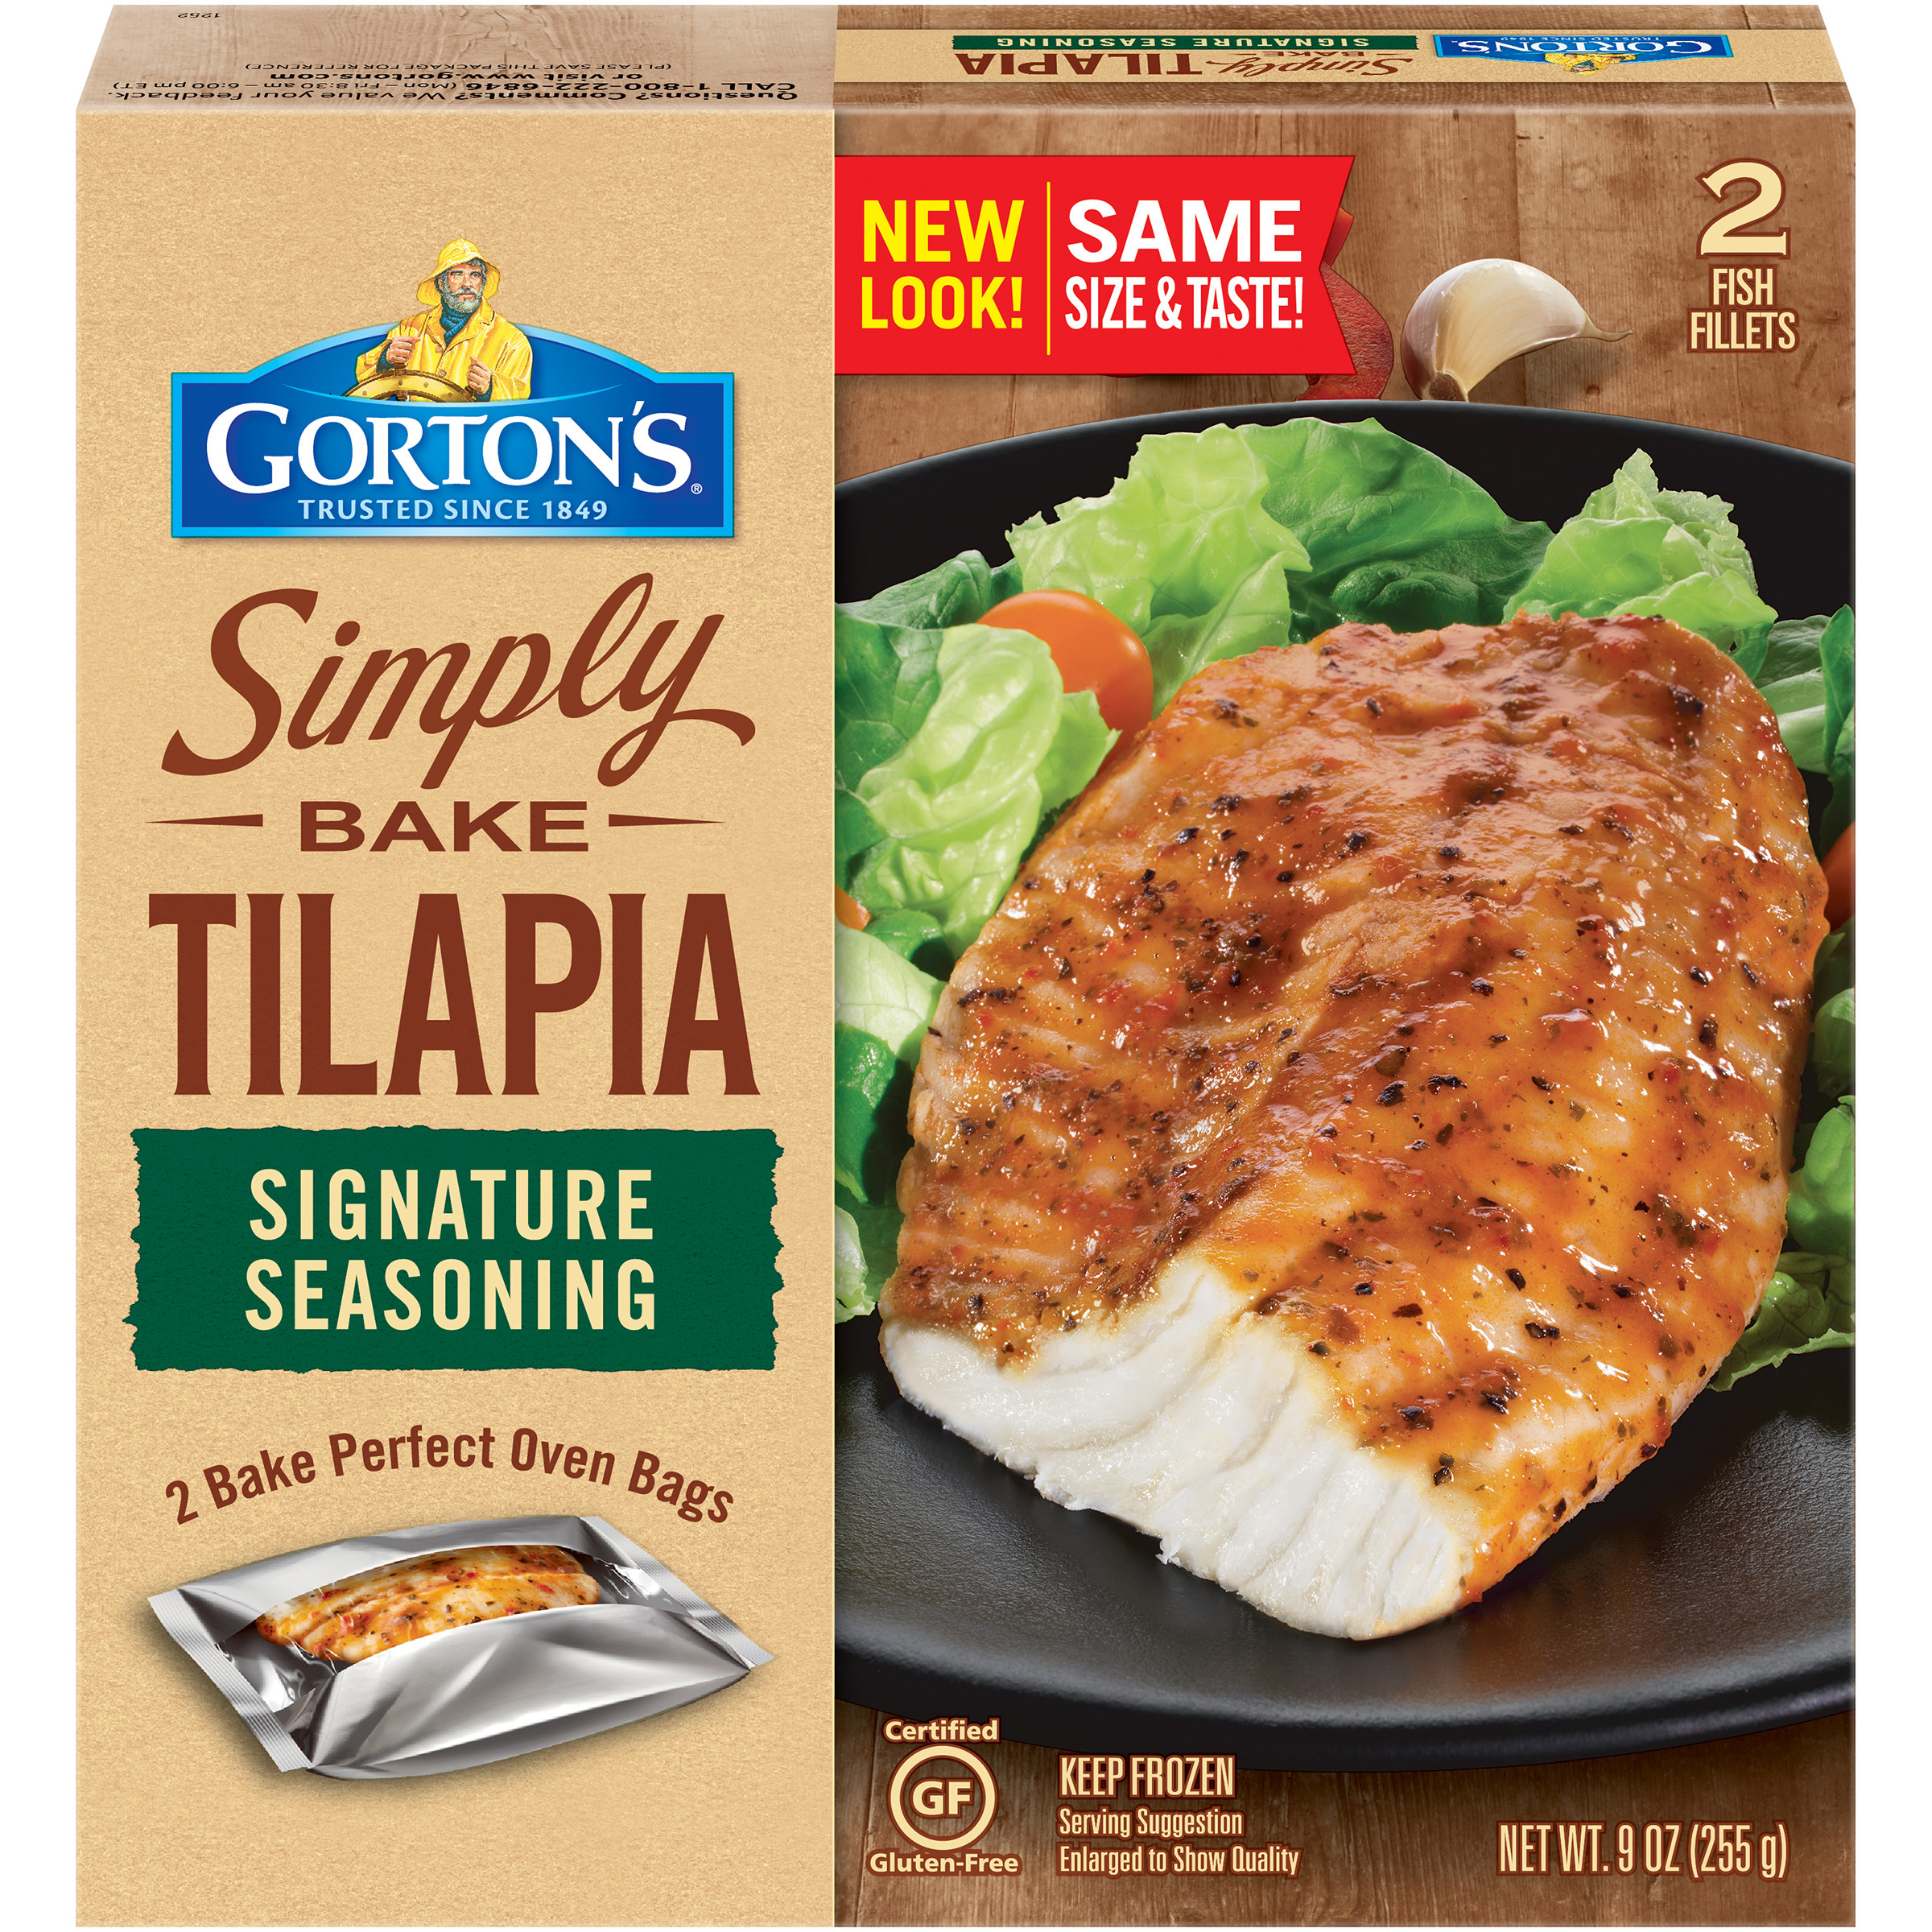 Gorton's Simply Bake Signature Seasoning Tilapia Fillets, 2 count